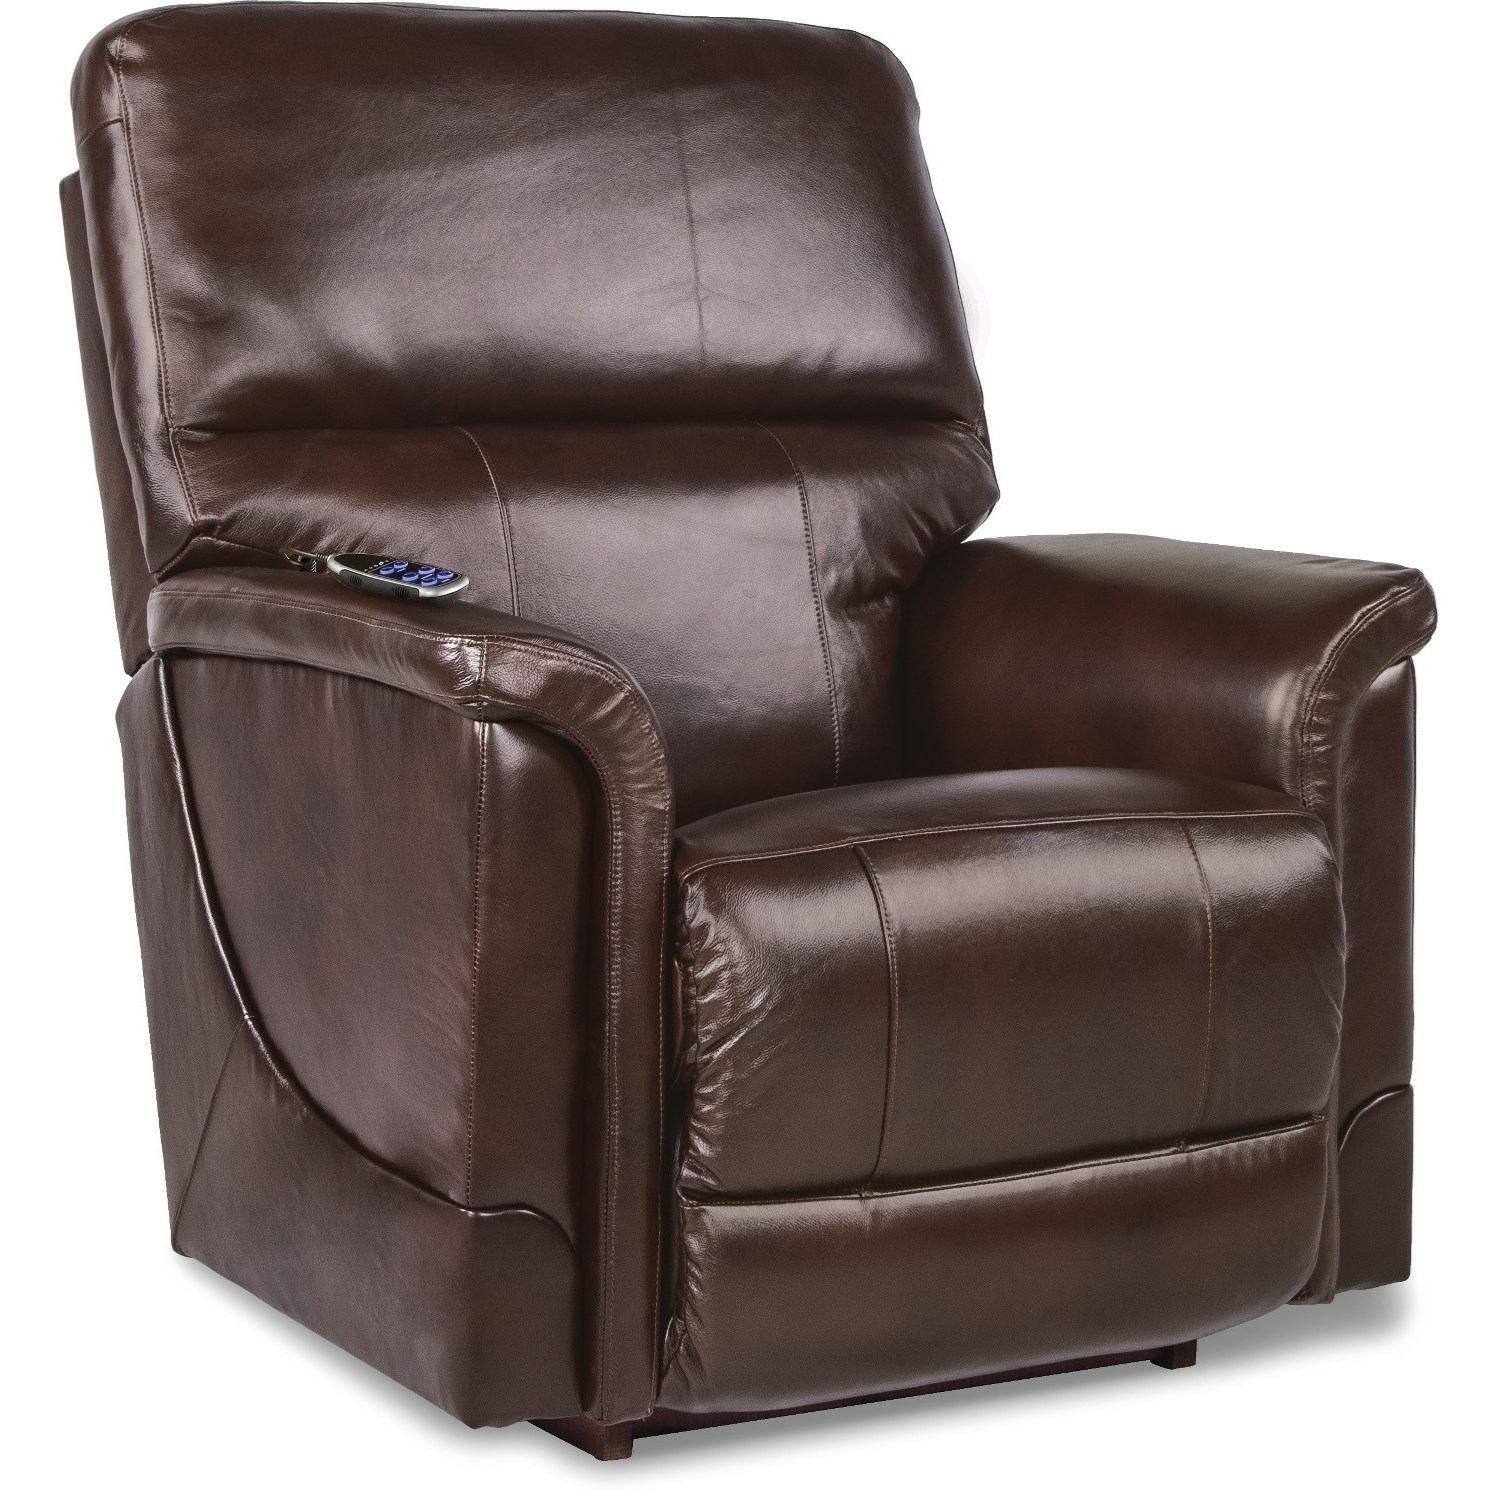 Casual Power-Recline-XRw+ Wall Hugger Recliner